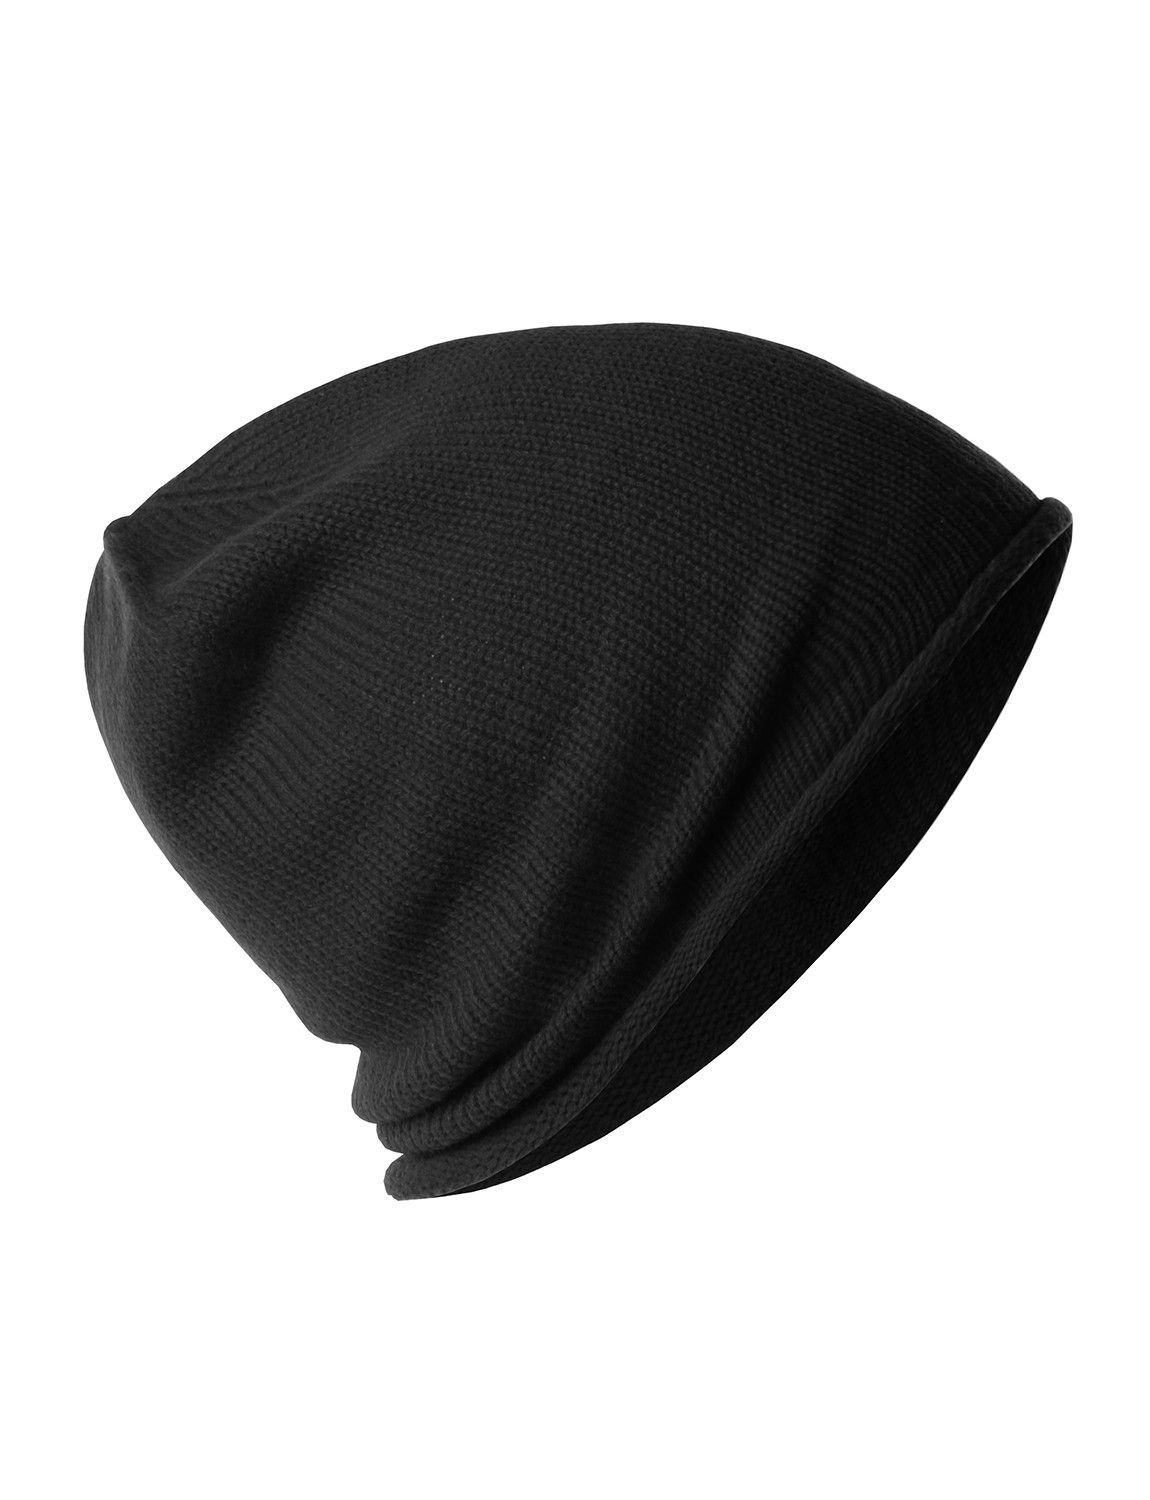 7c346aa4 This ultralightweight soft knit slouchy beanie is the perfect headwear to  complete your look. The